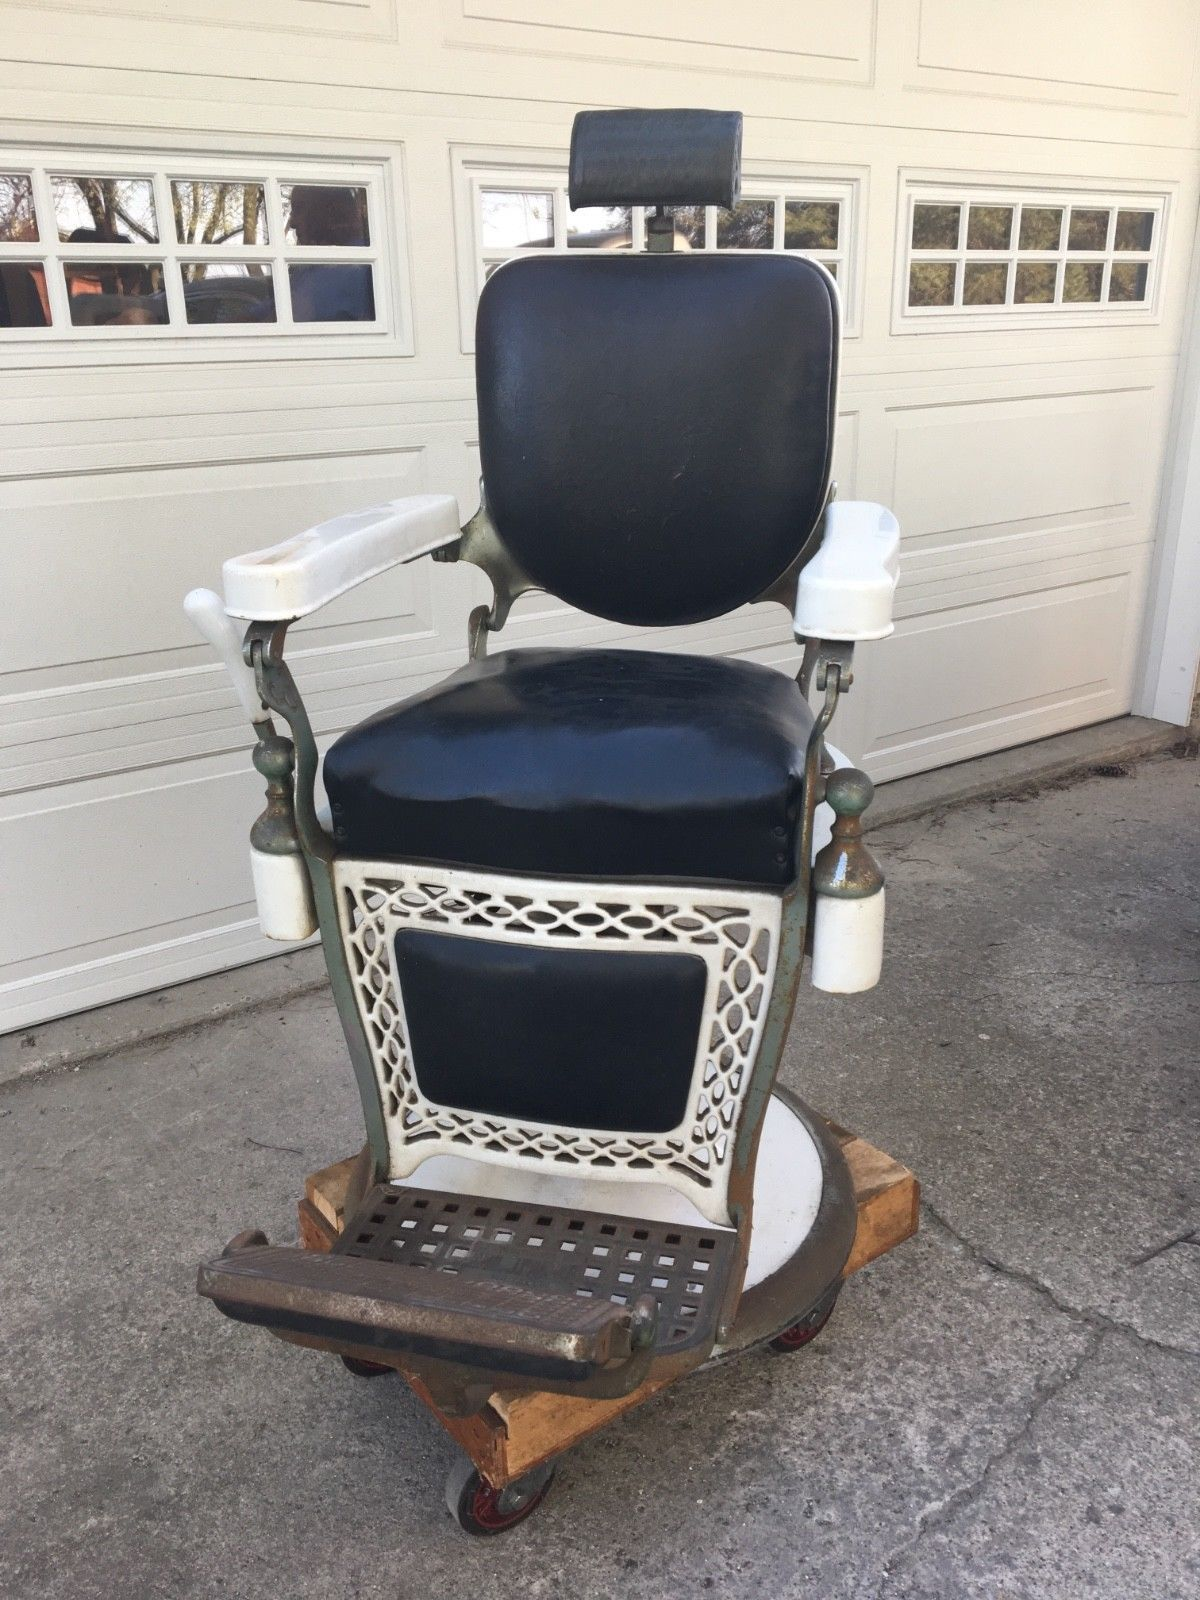 Emil J Paidar Antique Barber Chair Made In Chicago Authentic Original S R Barber Chair Vintage Barber Chair Barber